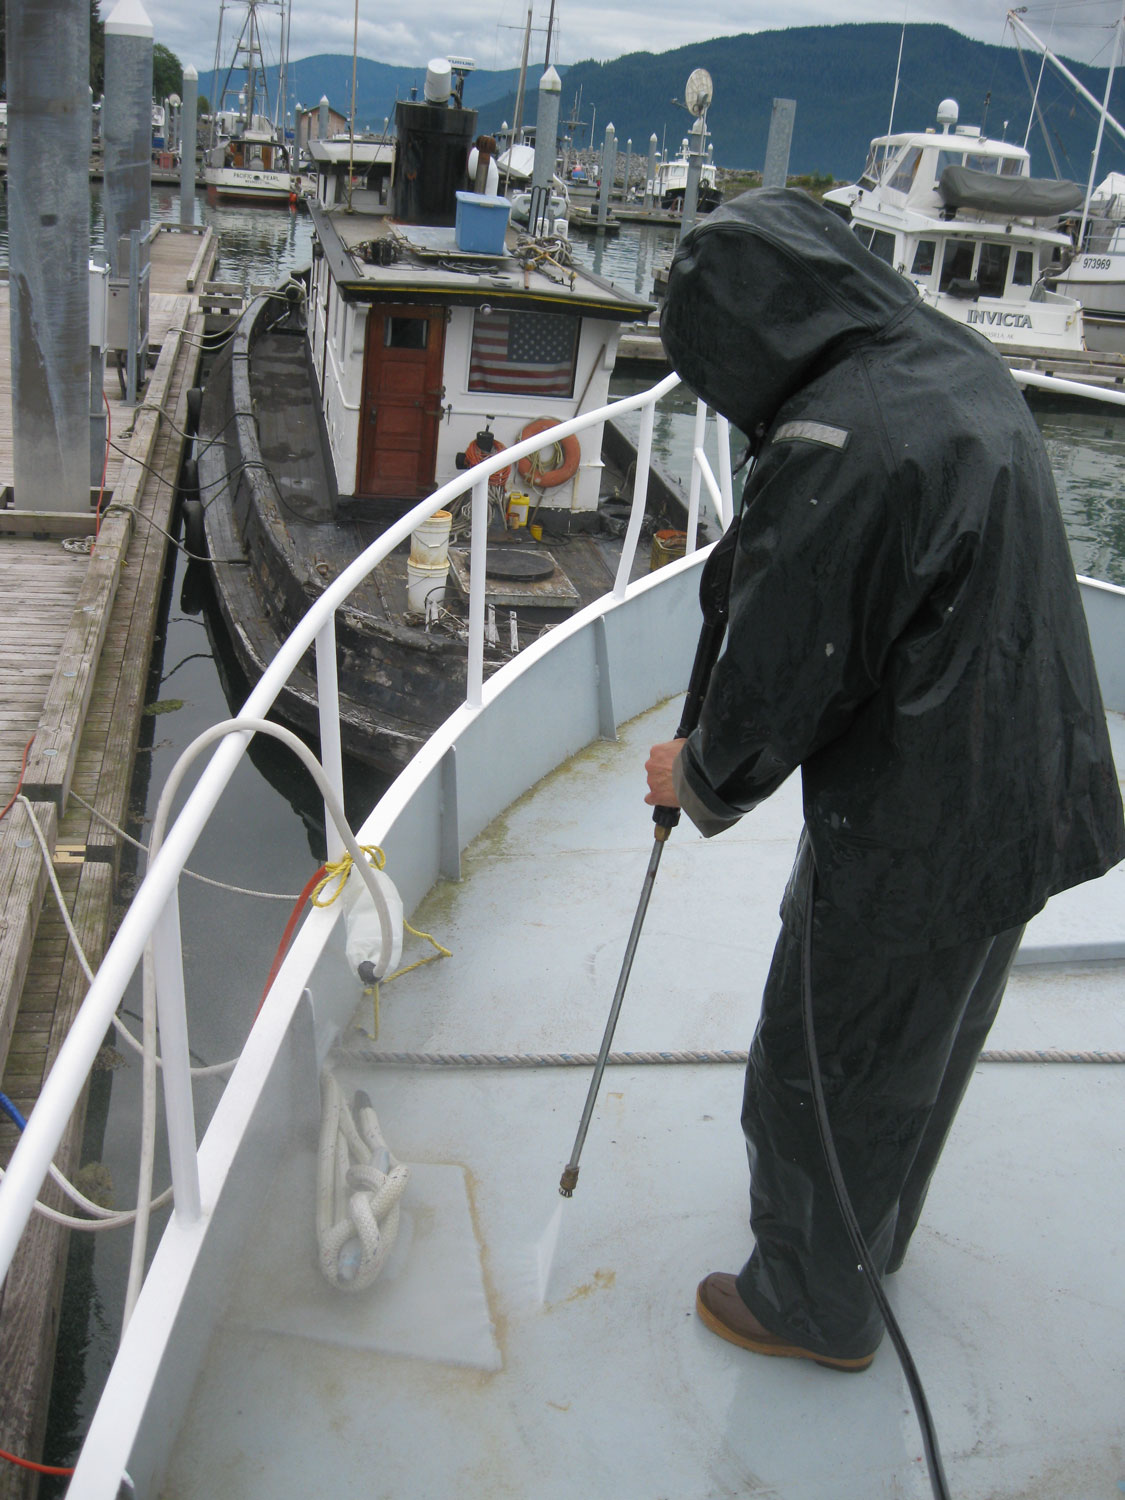 Pressure washing decks all decked out in raingear and safety glasses.